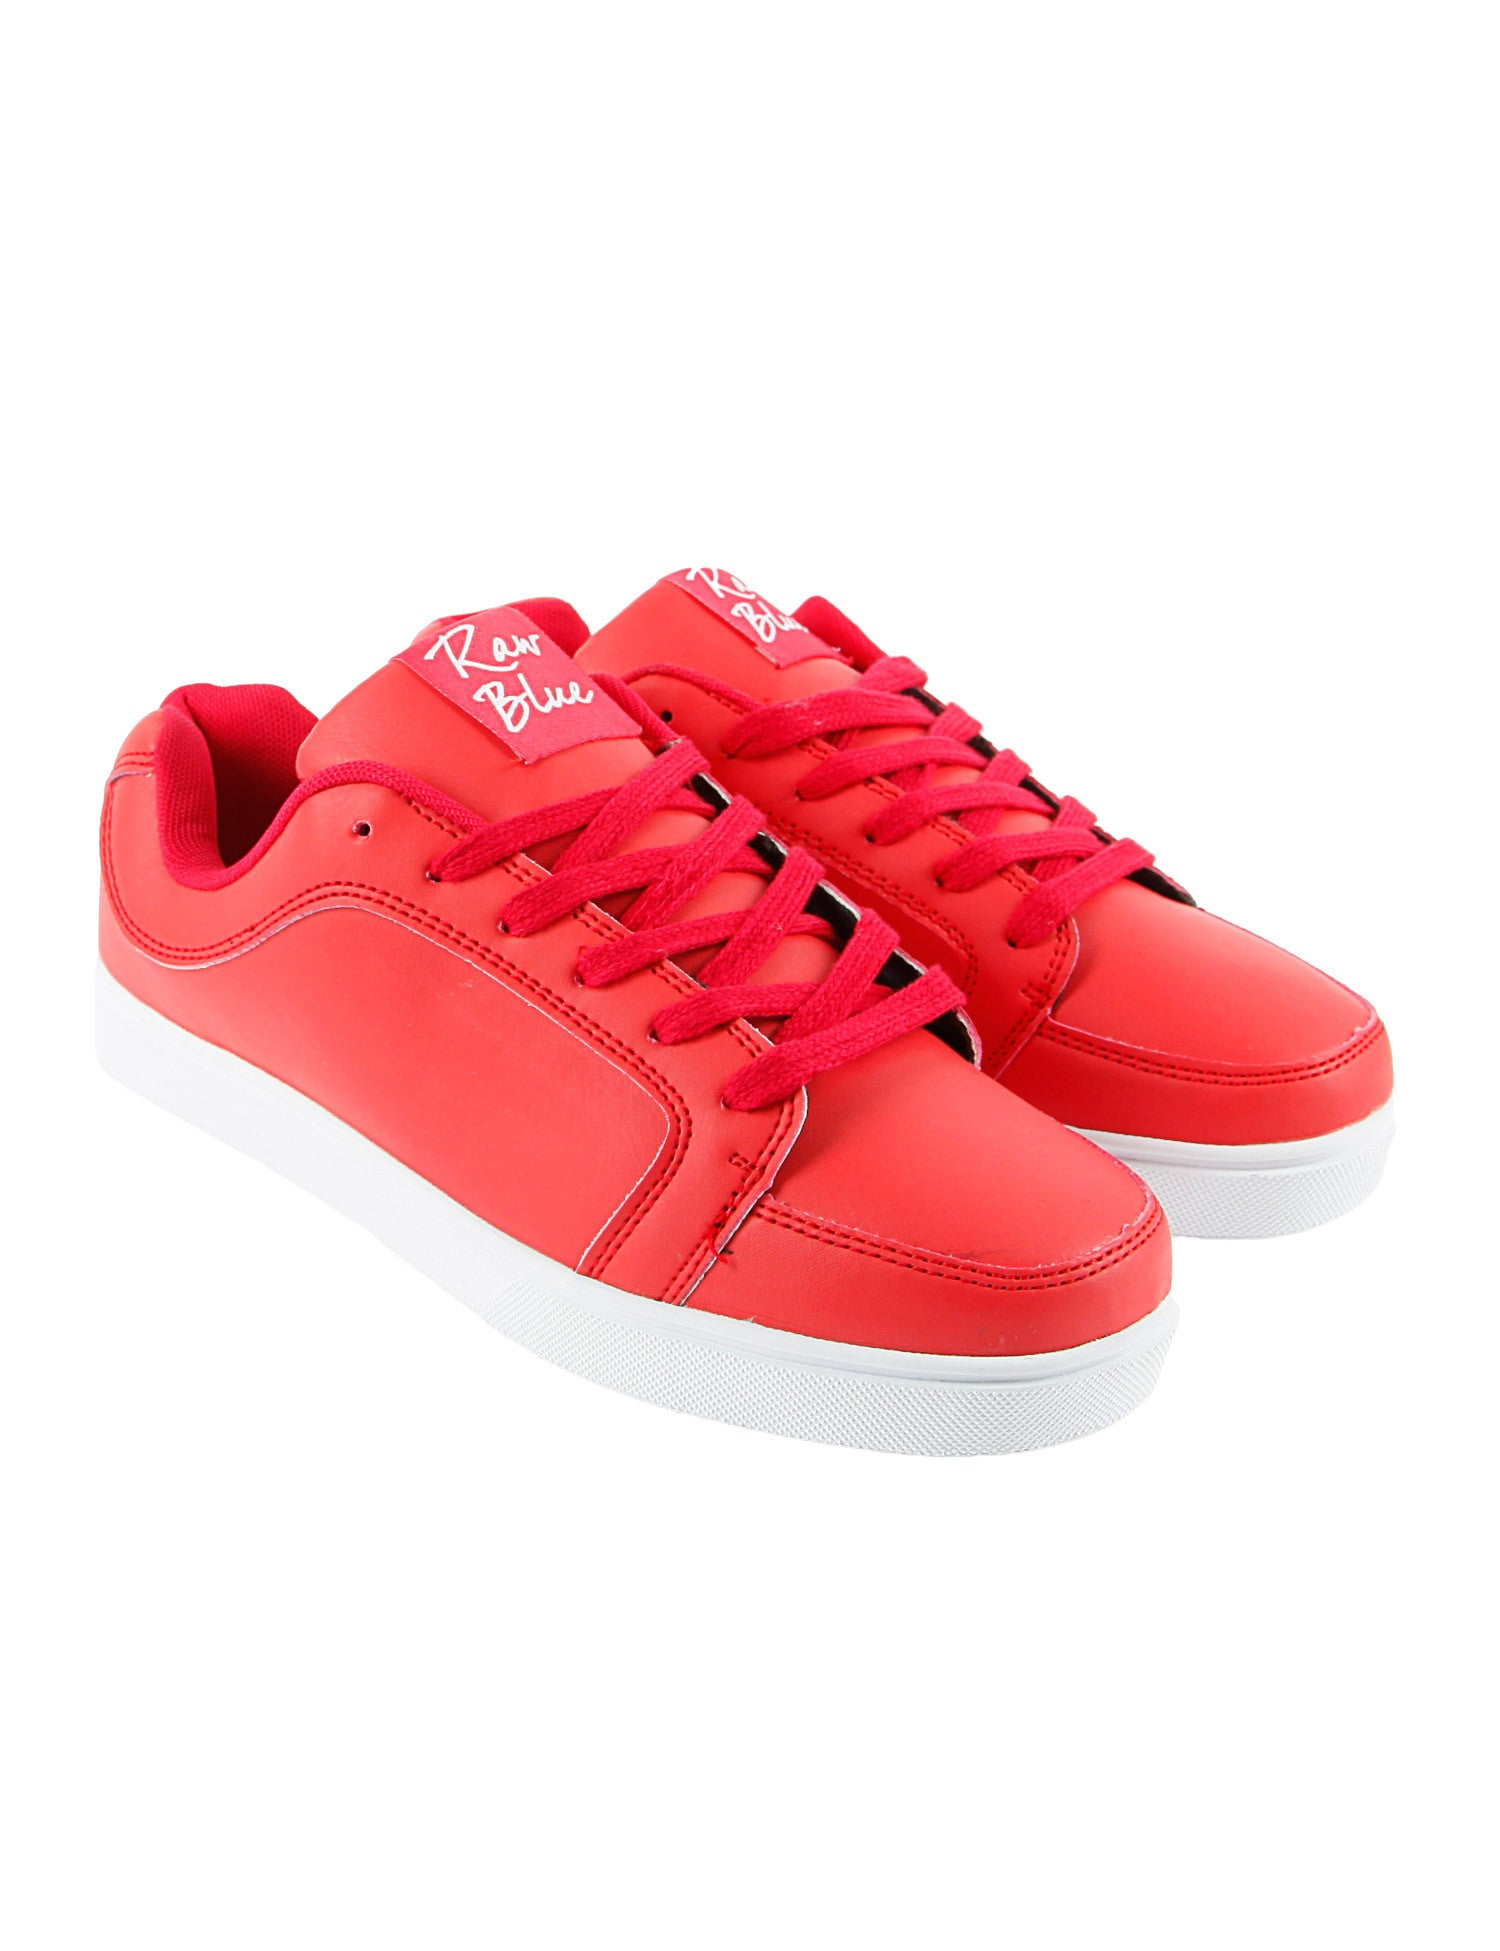 Raw Blue RBS-LOW-155B Shoes Red